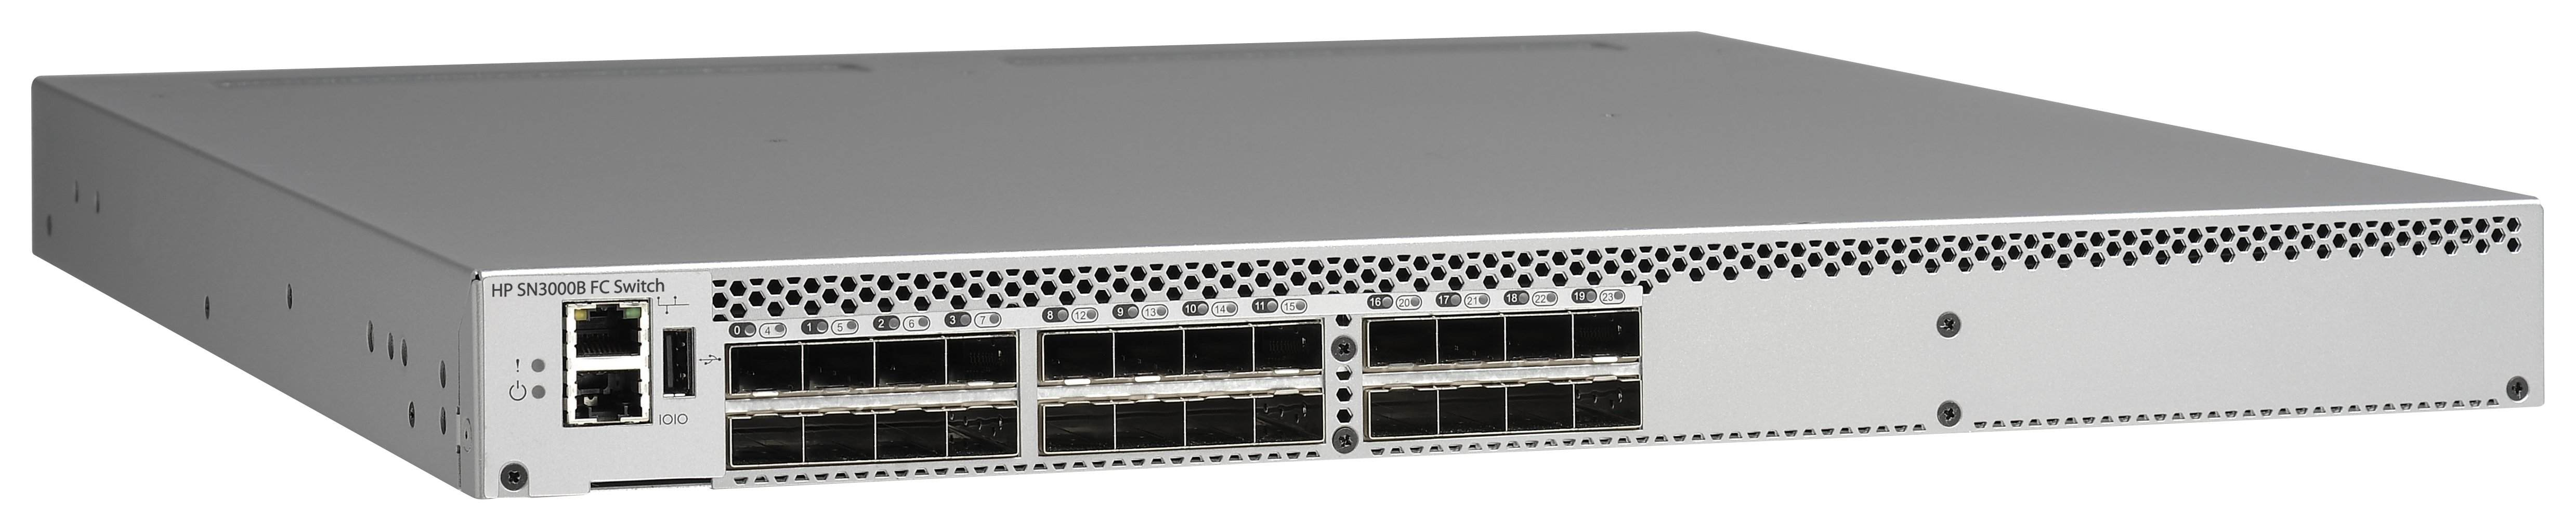 HPE SN3000B 16Gb 24-port/12-port Active Fibre Channel Switch